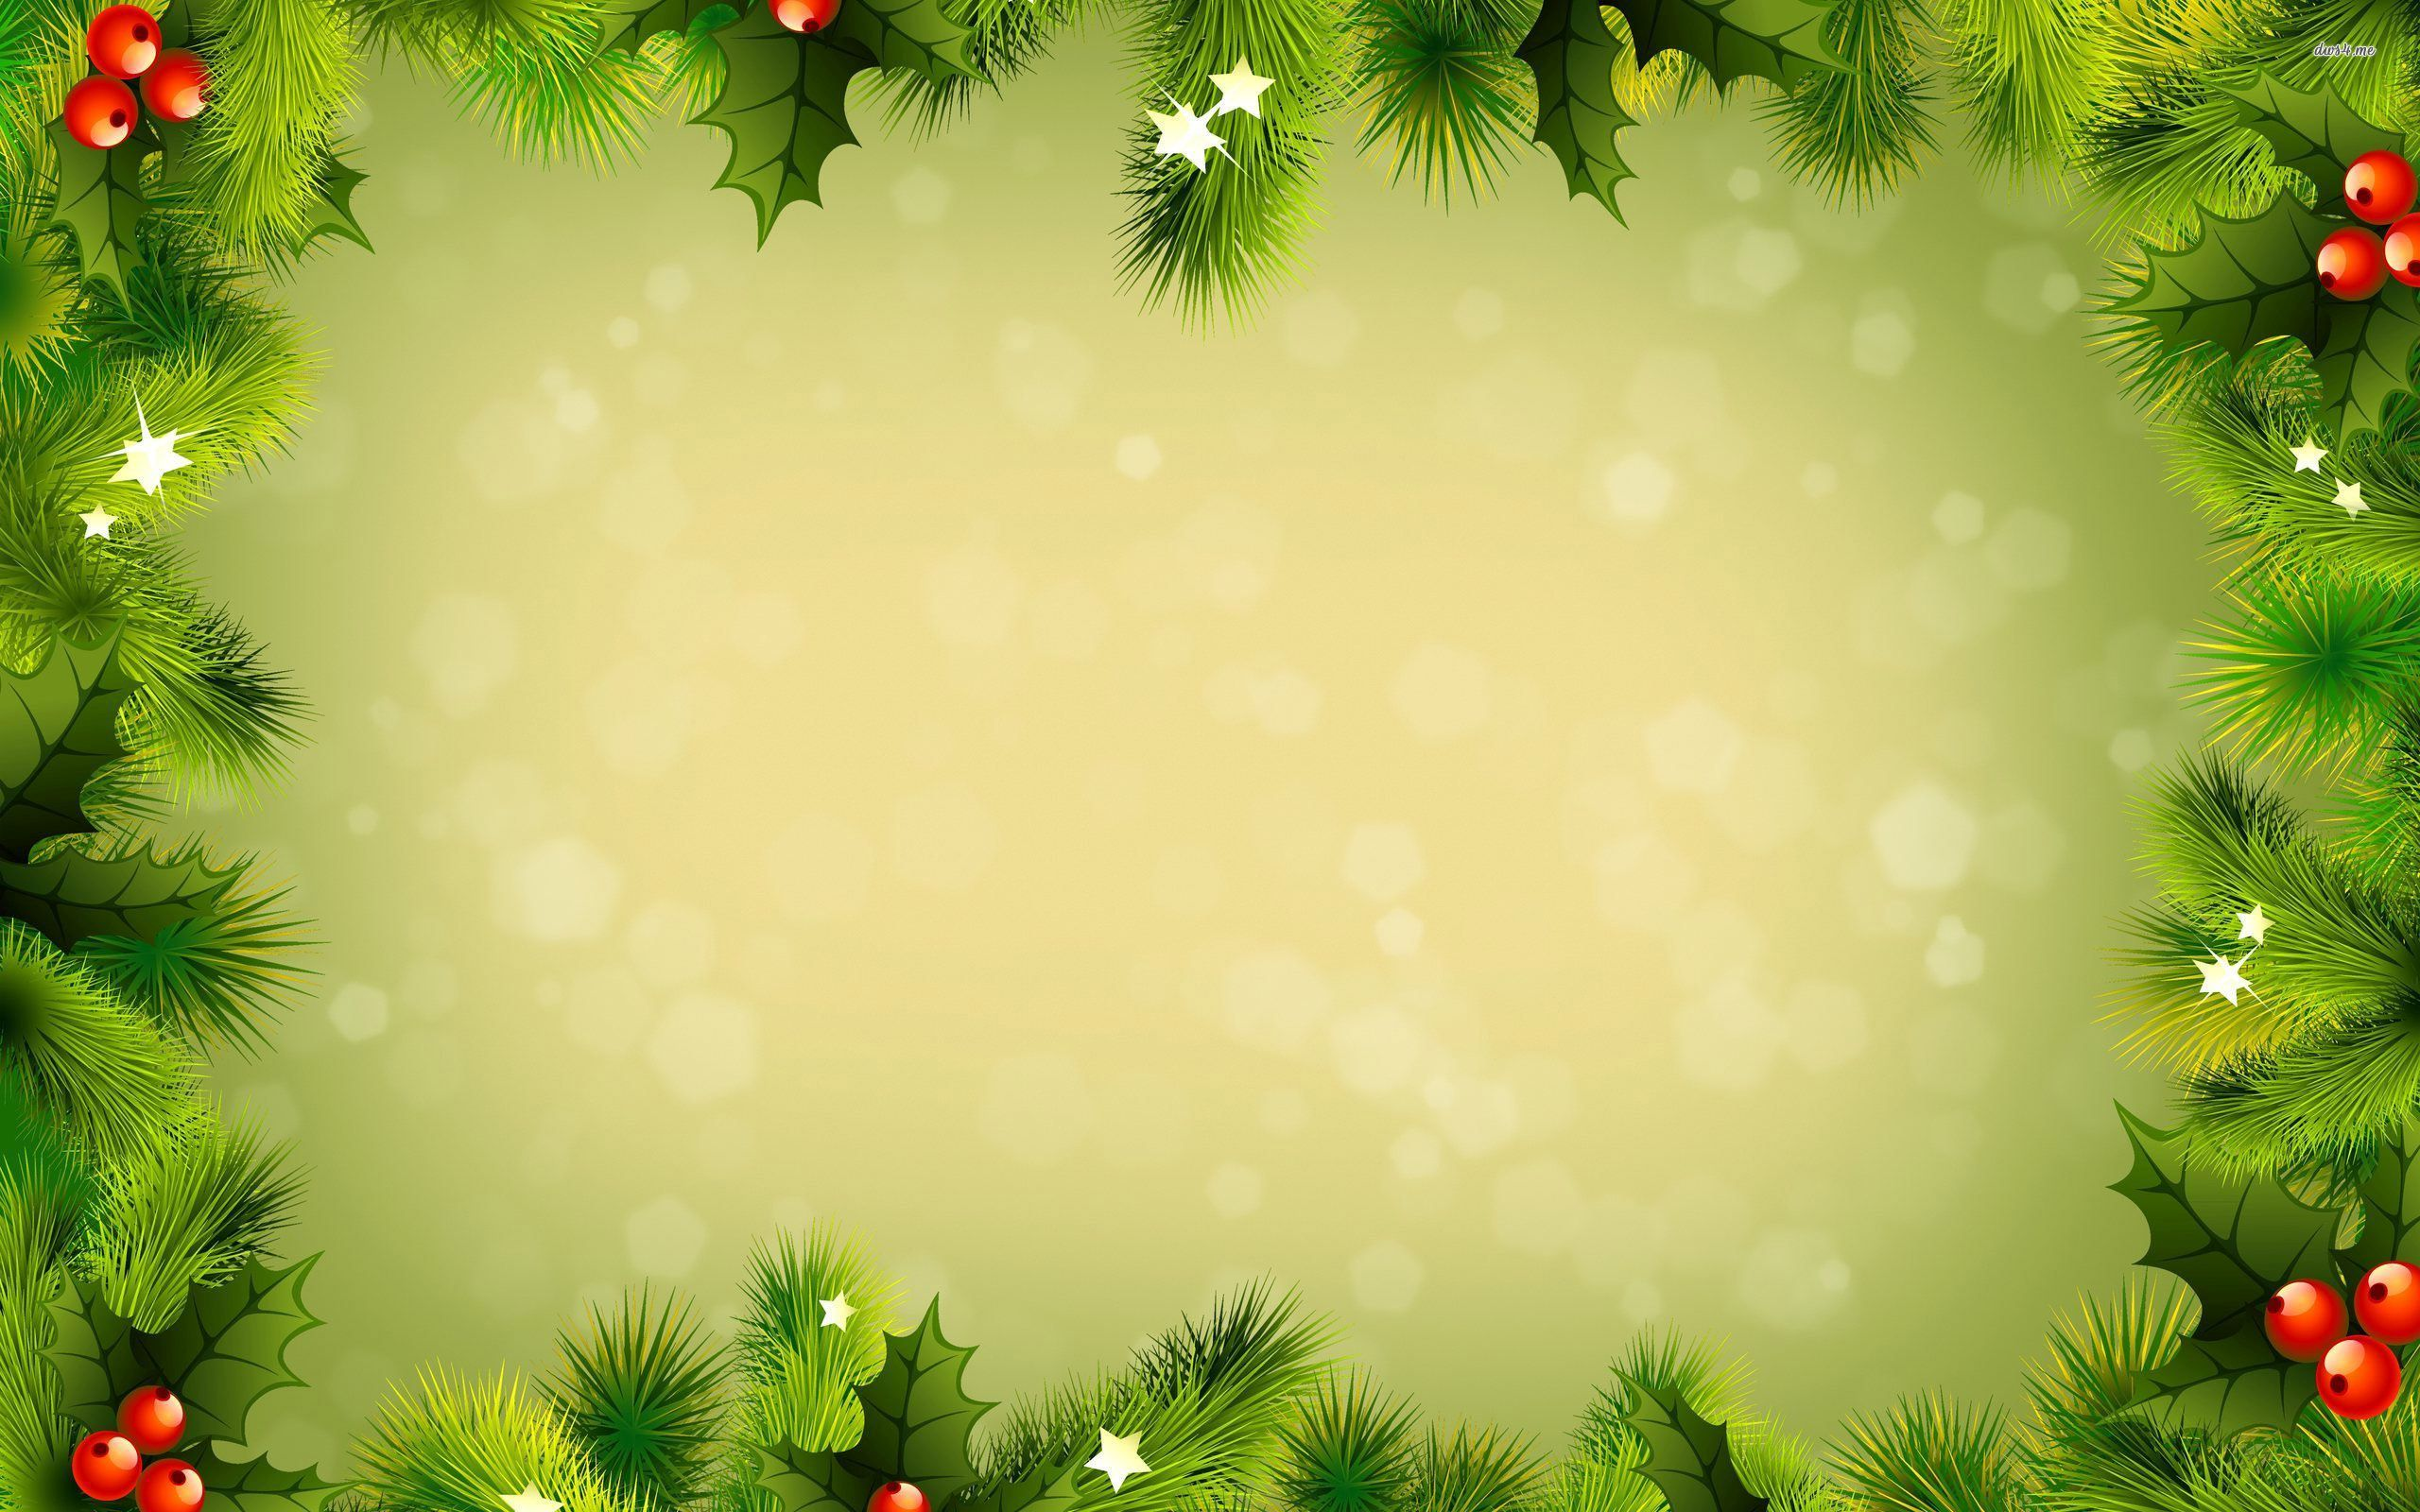 2560x1600 - Wallpaper for Christmas 25